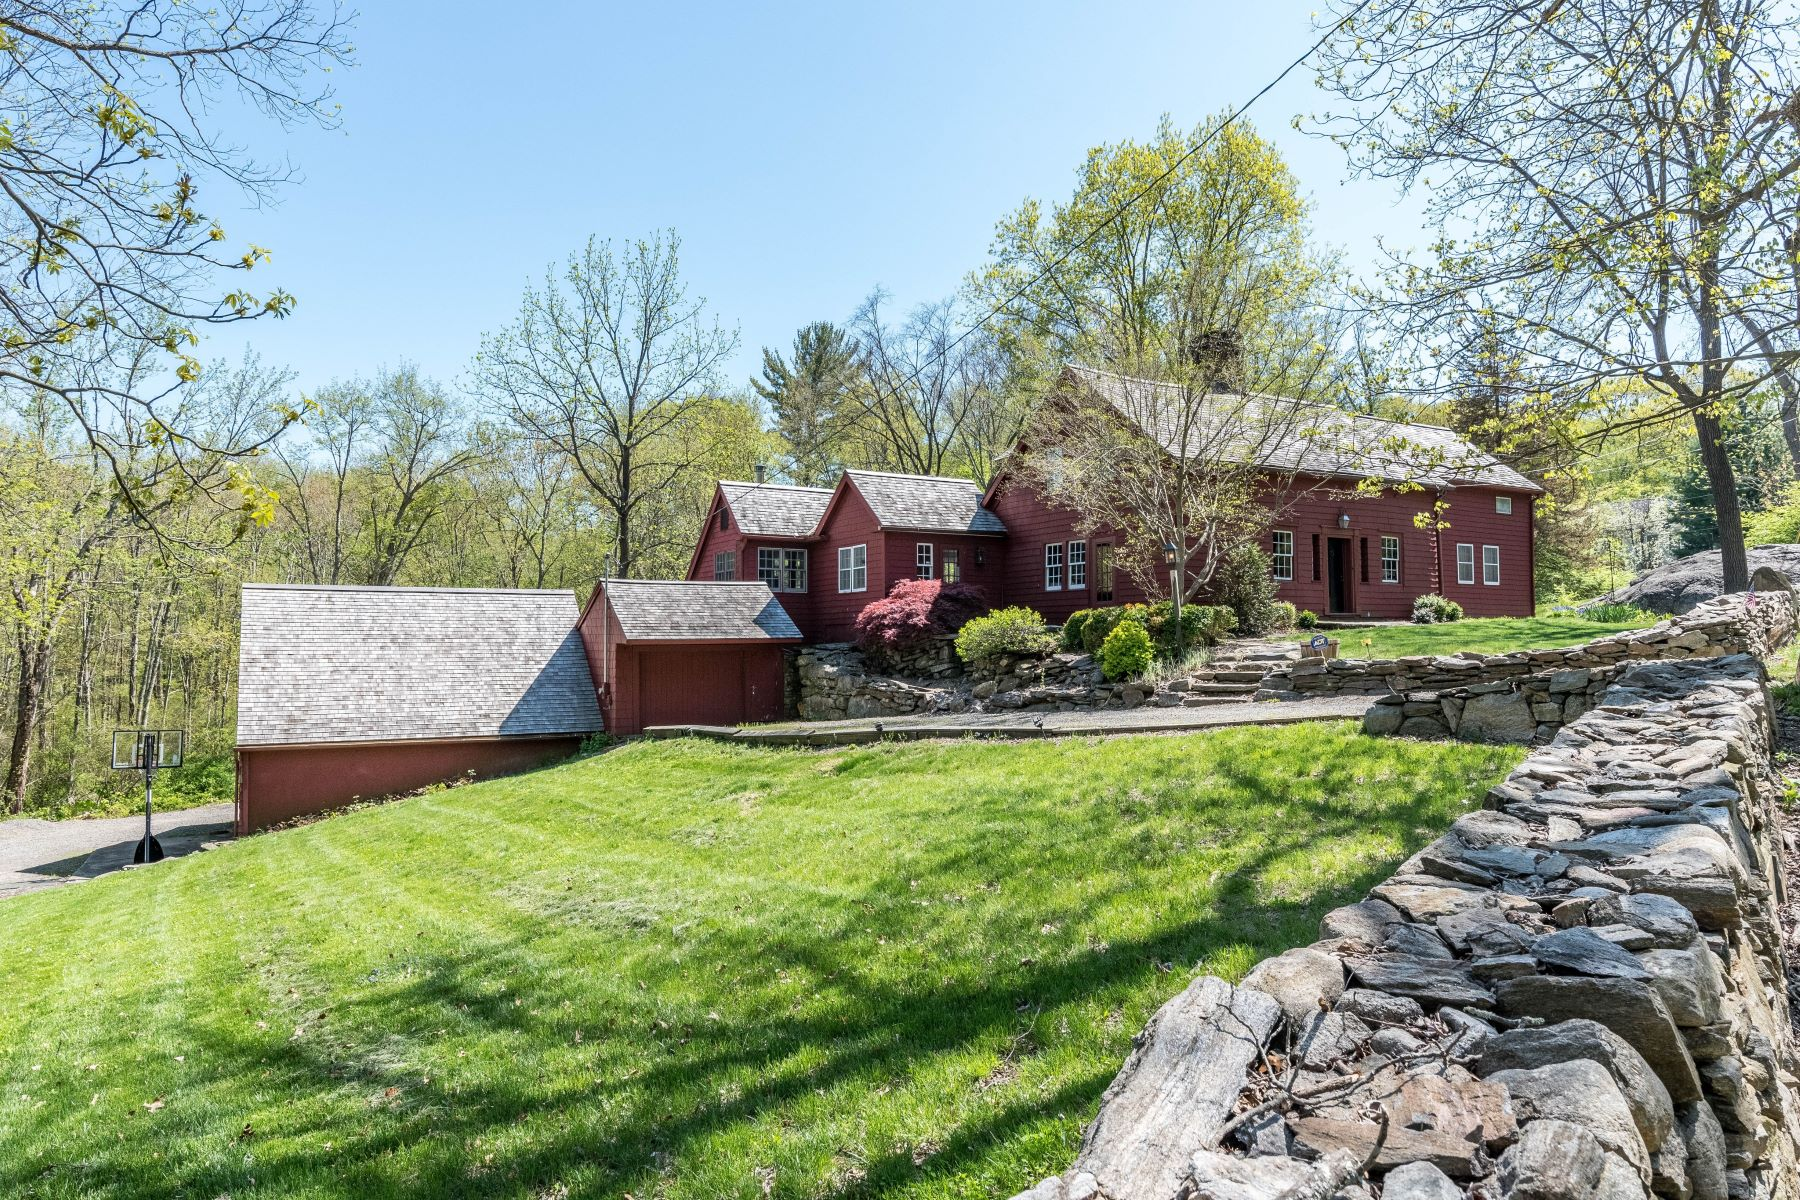 Single Family Homes for Sale at Over 300 Years Of Connecticut History 43 Old Easton Turnpike, Weston, Connecticut 06883 United States